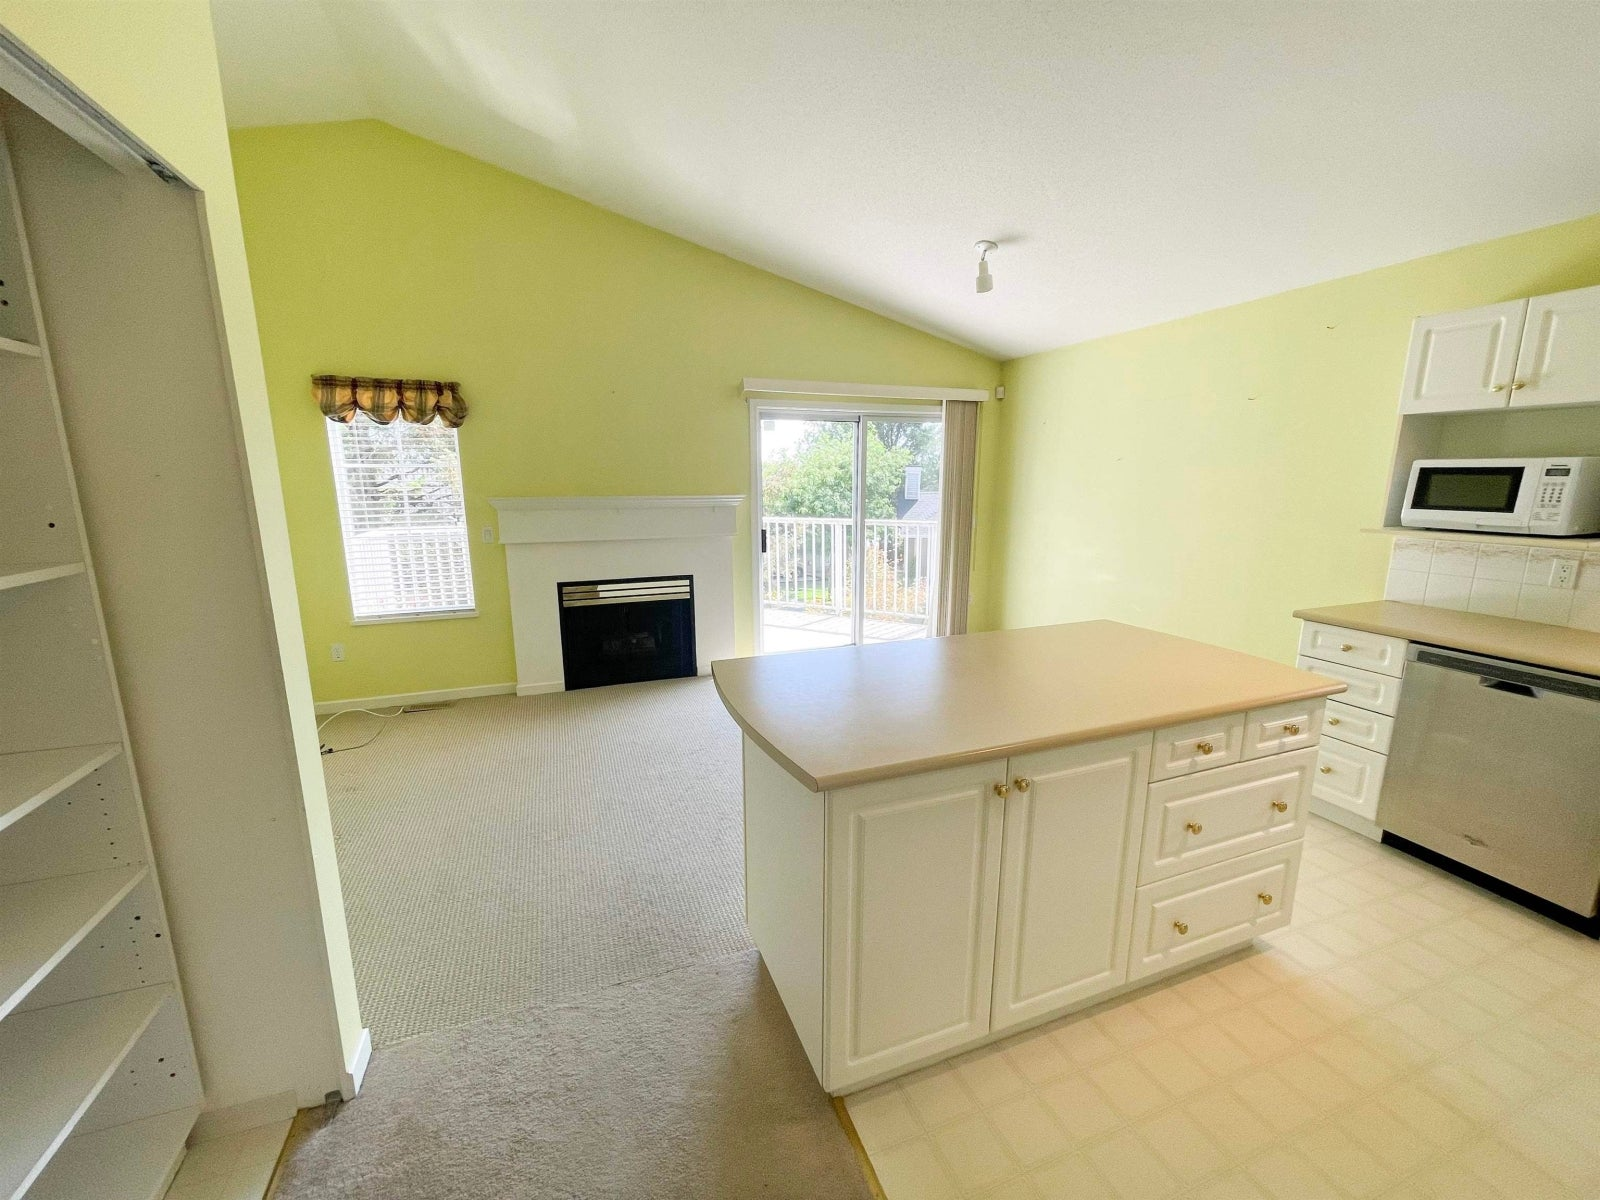 8 16888 80 AVENUE - Fleetwood Tynehead Townhouse for sale, 3 Bedrooms (R2618785) #8